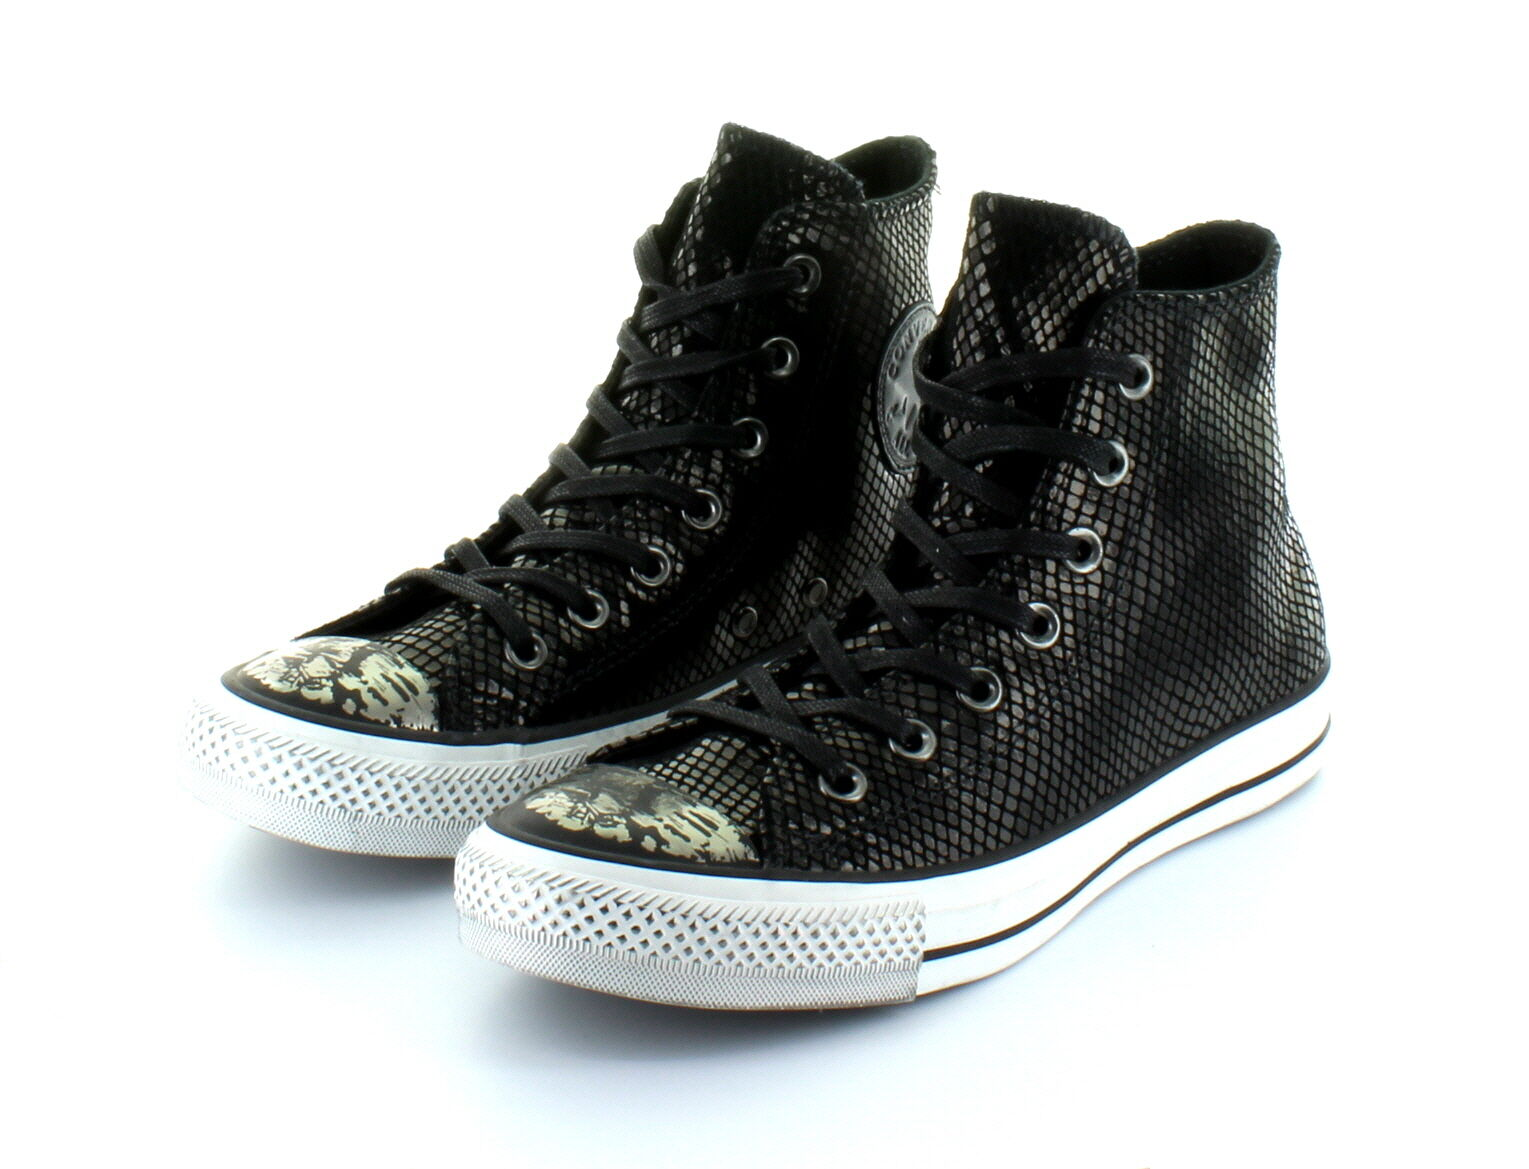 Converse Chuck Taylor AS Limited Edition Hi Black Stone Leather Gr. 37,5   38,5